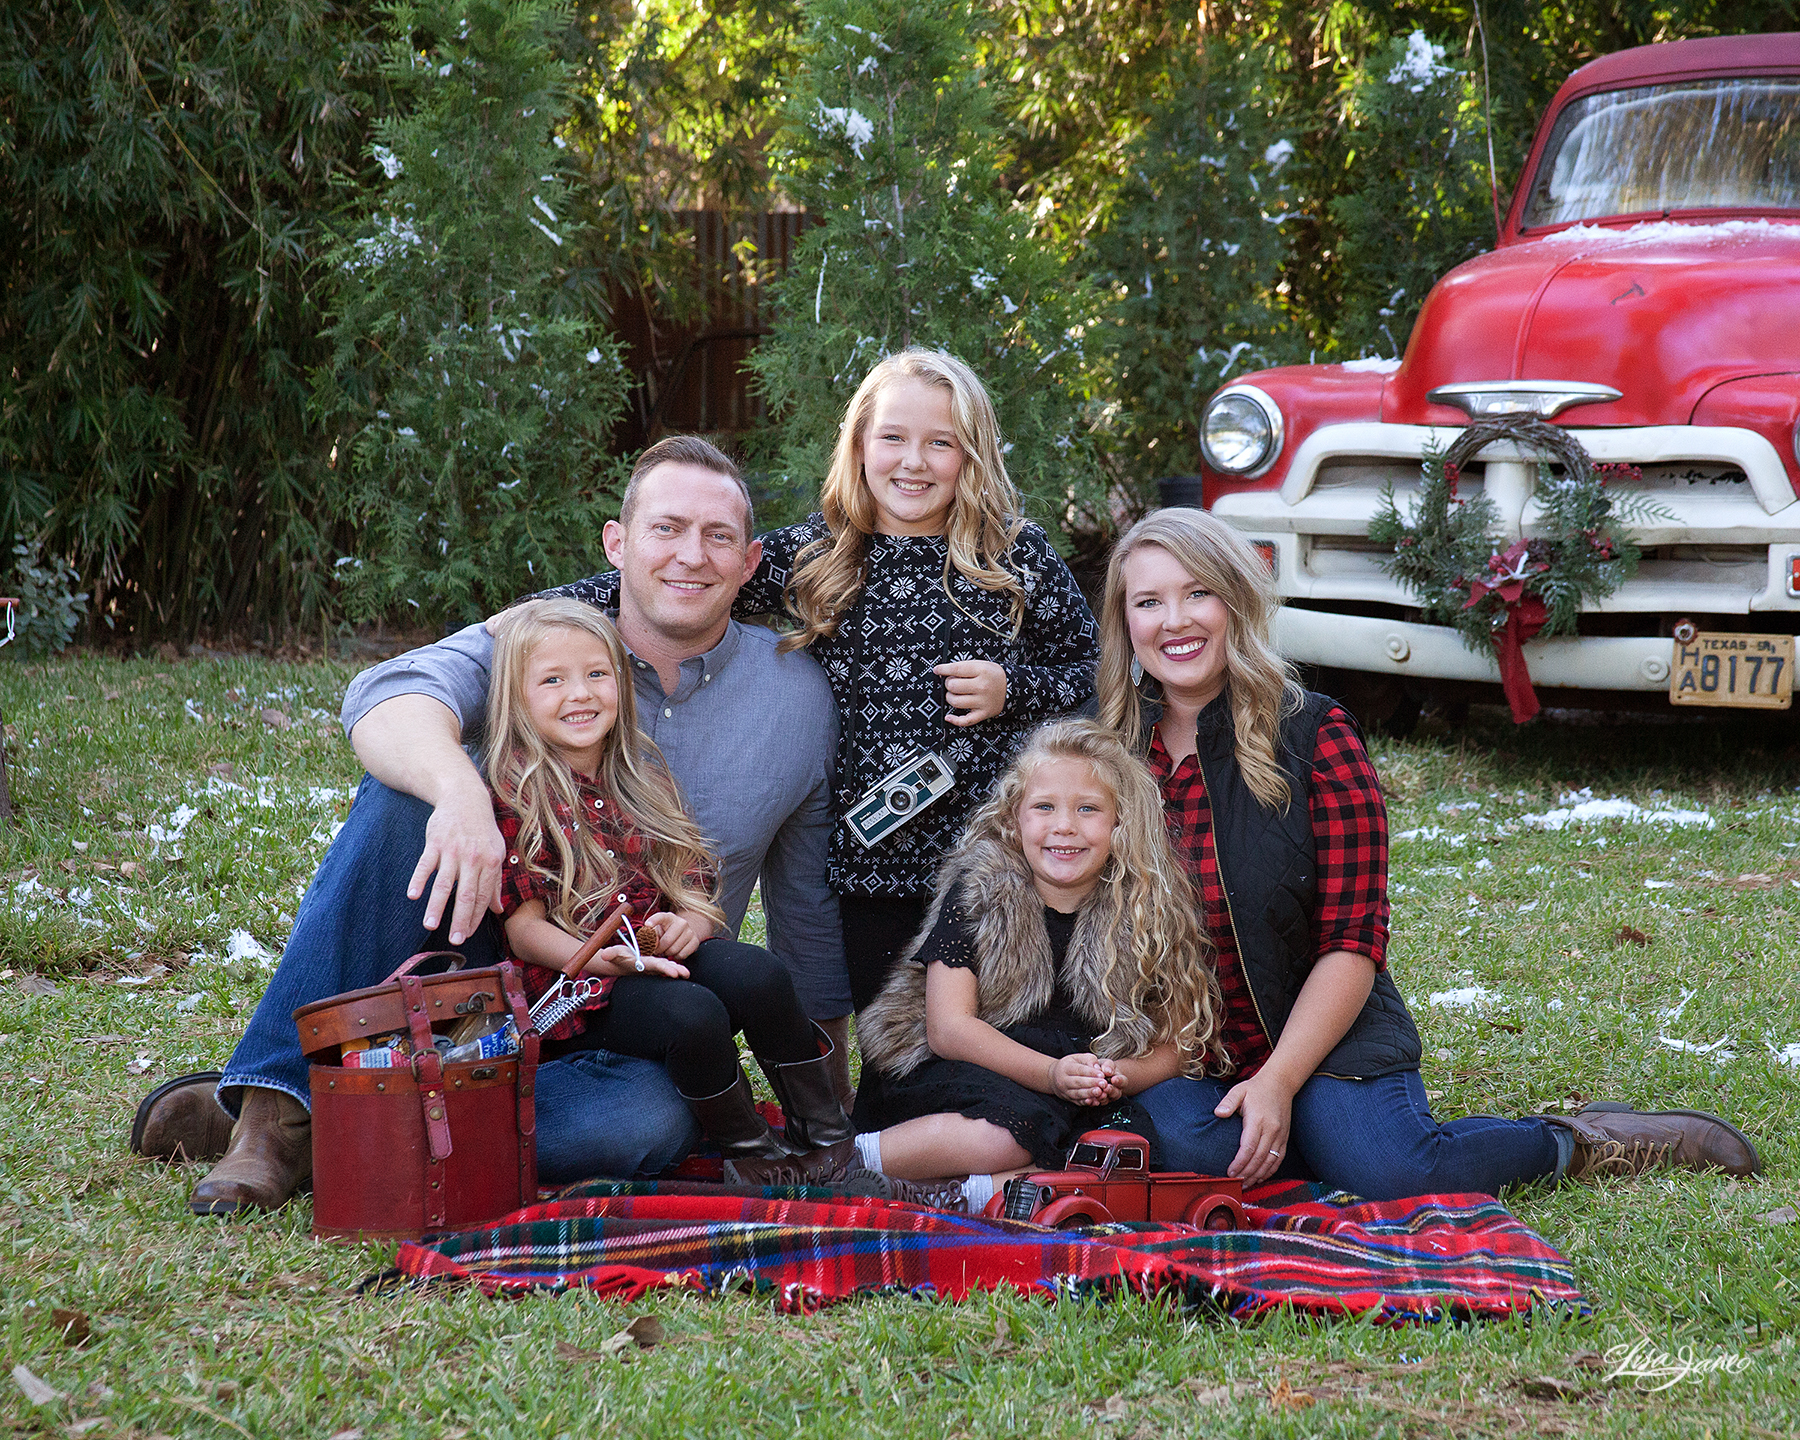 Best Clothing for Family Pictures Outside